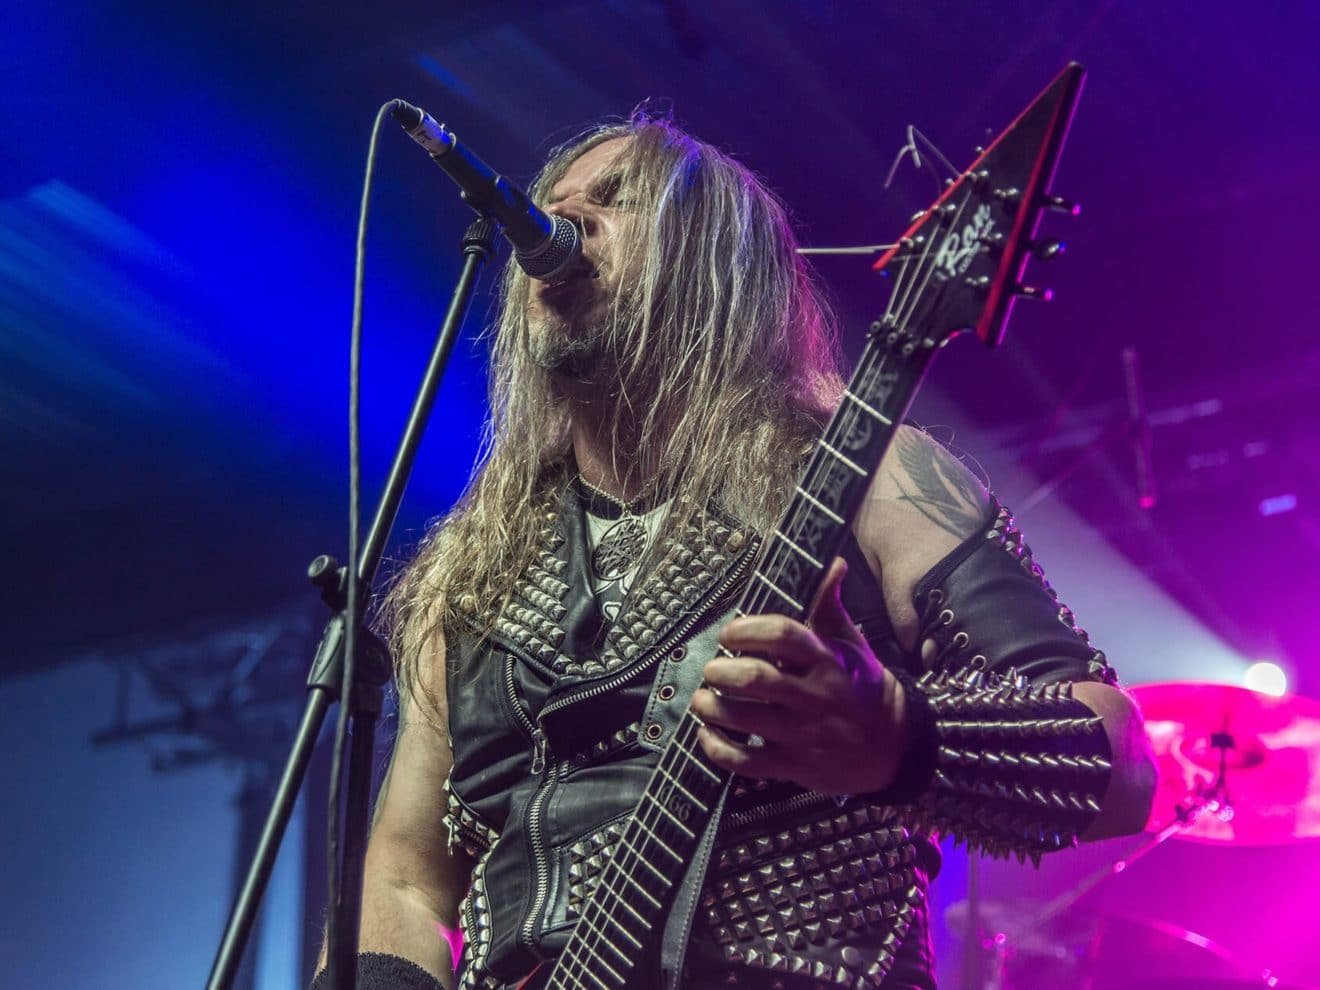 Aesthetics and the Symbolism of Extreme Metal Music